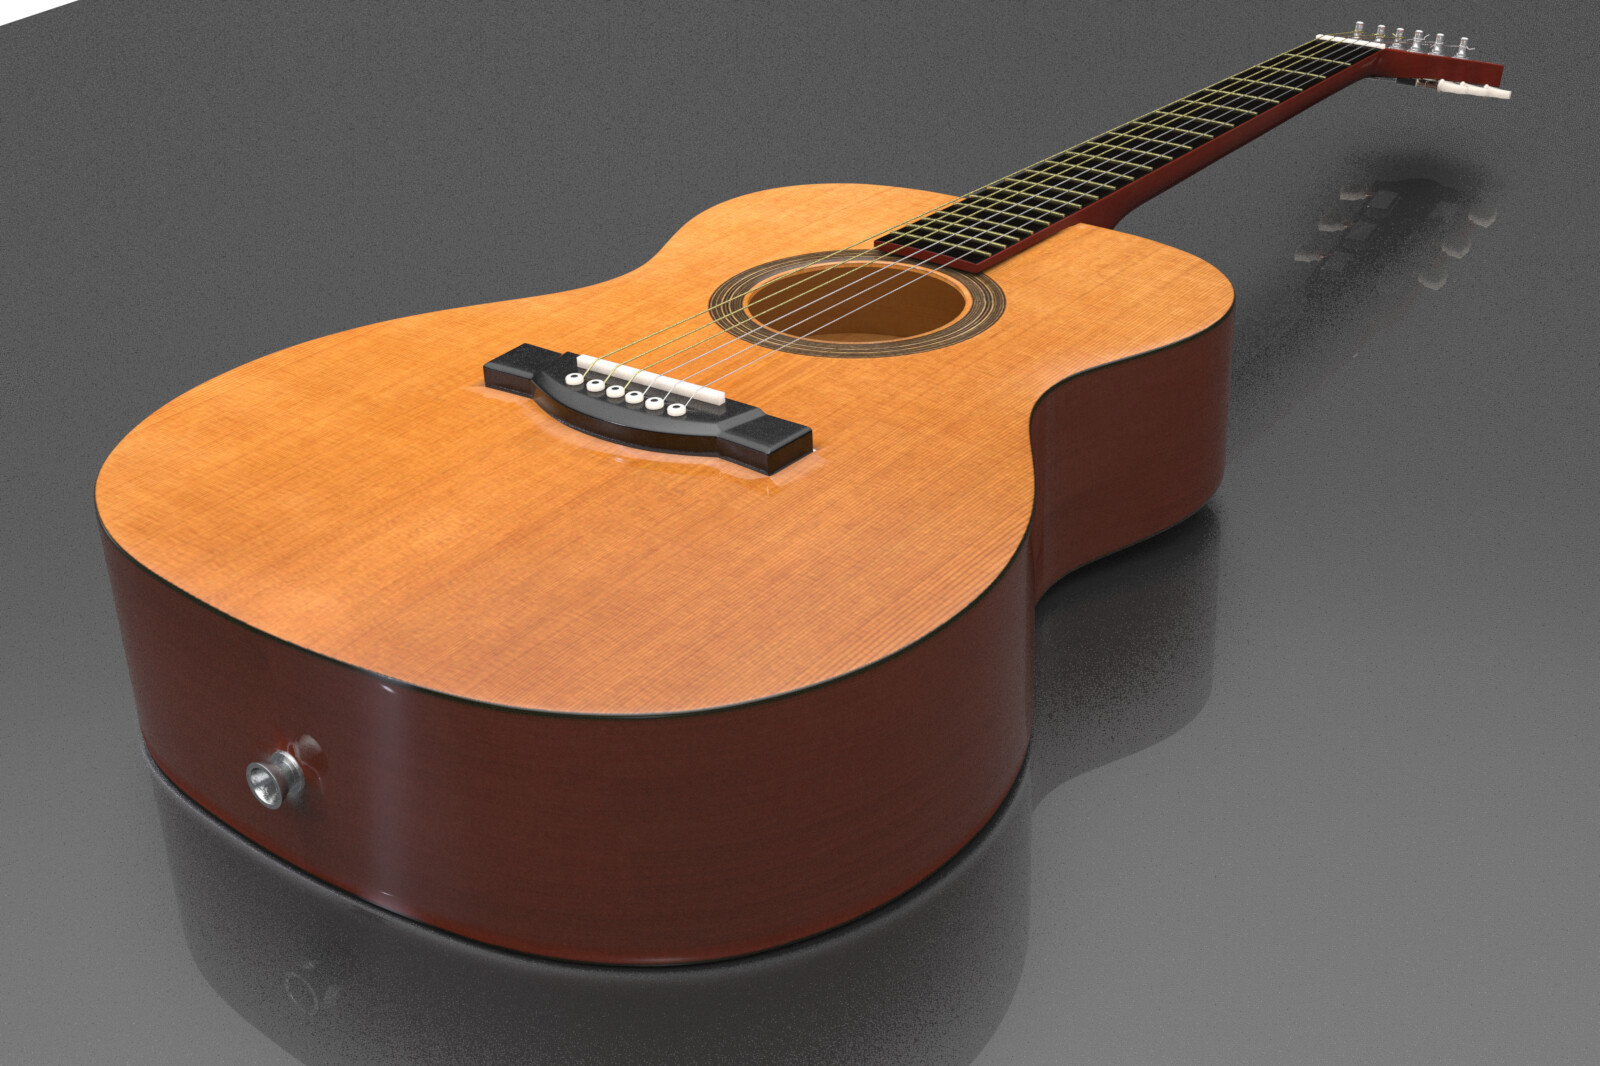 Acoustic Dreadnought modeled in Modo - this is an in-modo render. I converted this model to a native ArchiCAD object, with appropriate vectorial cleanups and the ability for the materials to be easily tweaked in use.